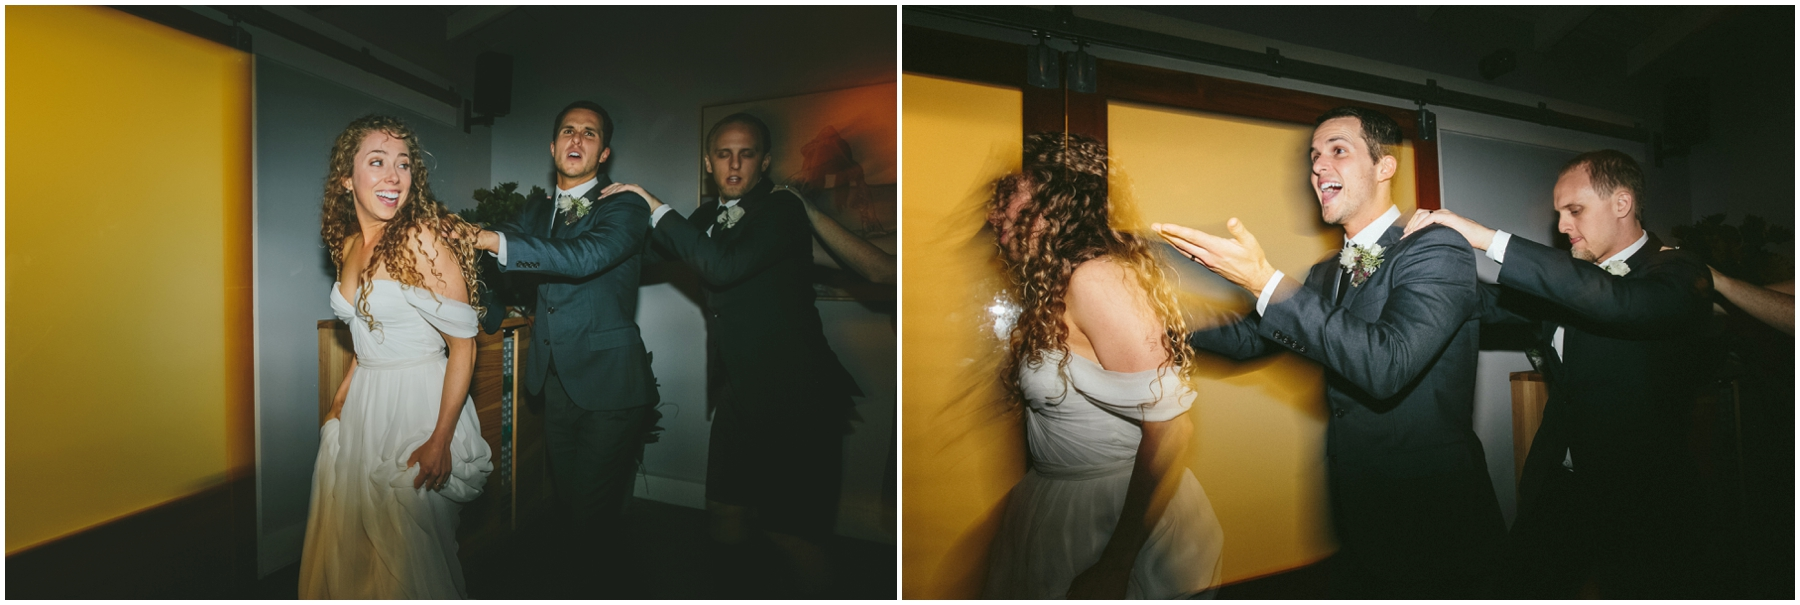 Emily+Paul-WEDDING_KellyBoitanoPhotography_0169